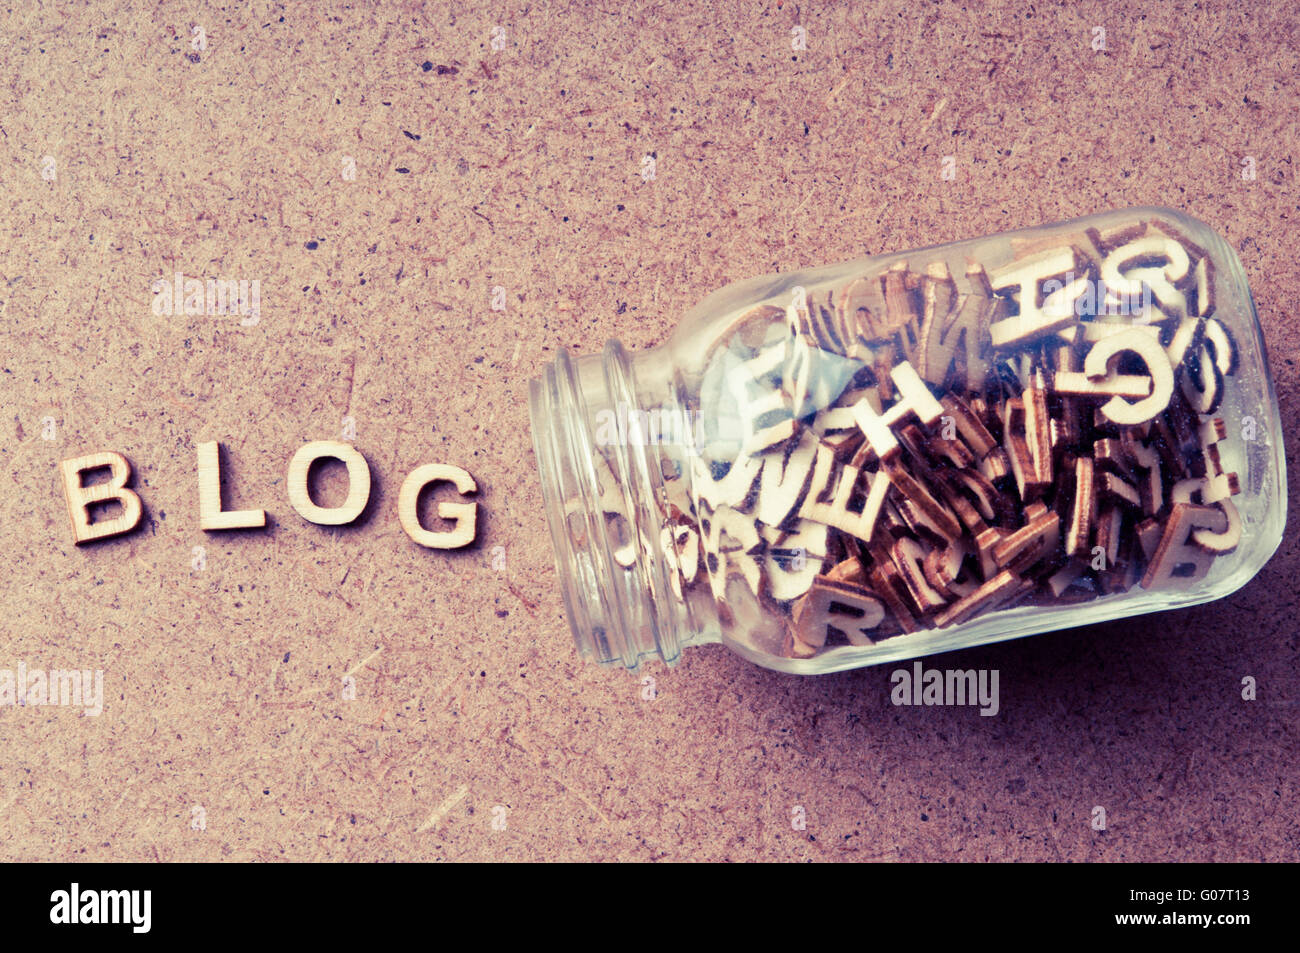 word blog formed with letters coming out of a bottle - blog concept - Stock Image